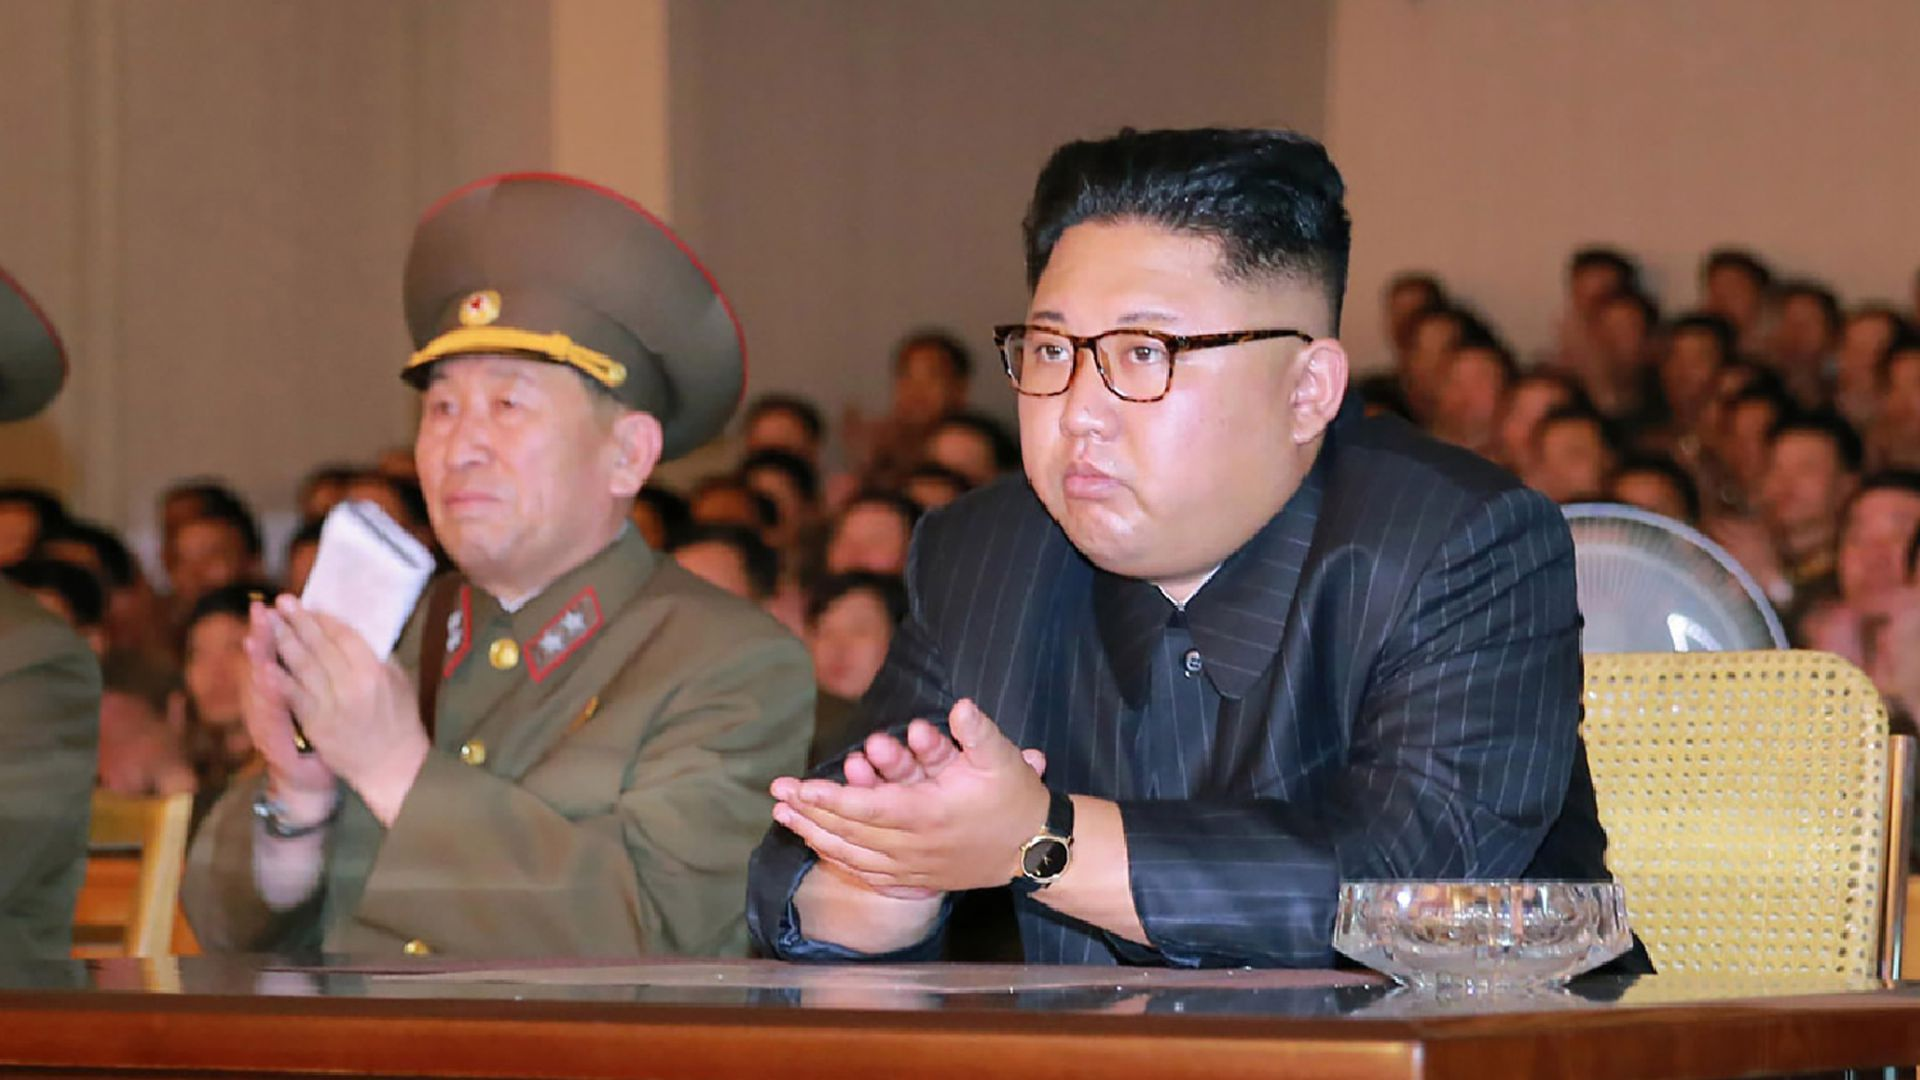 North Korean leader Kim Jong-Un (C) clapping hands while viewing a stage during his inspecting the Command of the Strategic Force of the Korean People's Army